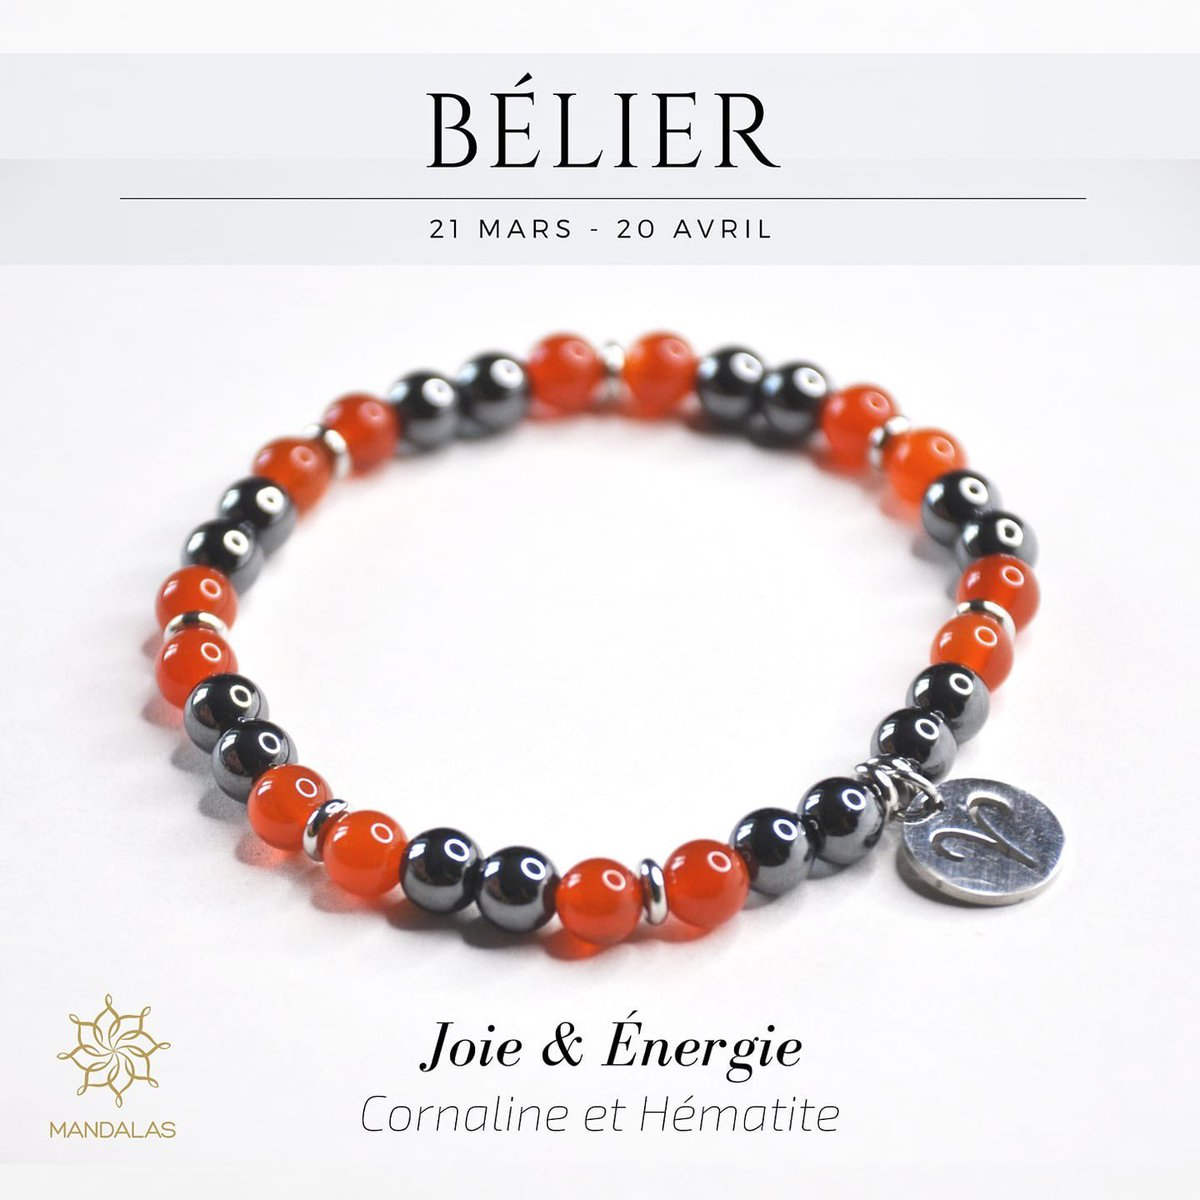 Bélier - 21 mars au 20 avril #Mandalas #bijoux #pierresnaturelles #bienêtre #mlm #vdi #autoentrepreneur #marketingdereseau #venteadomicile #ventedirecte #networkingpic.twitter.com/YNtsI0XT4u